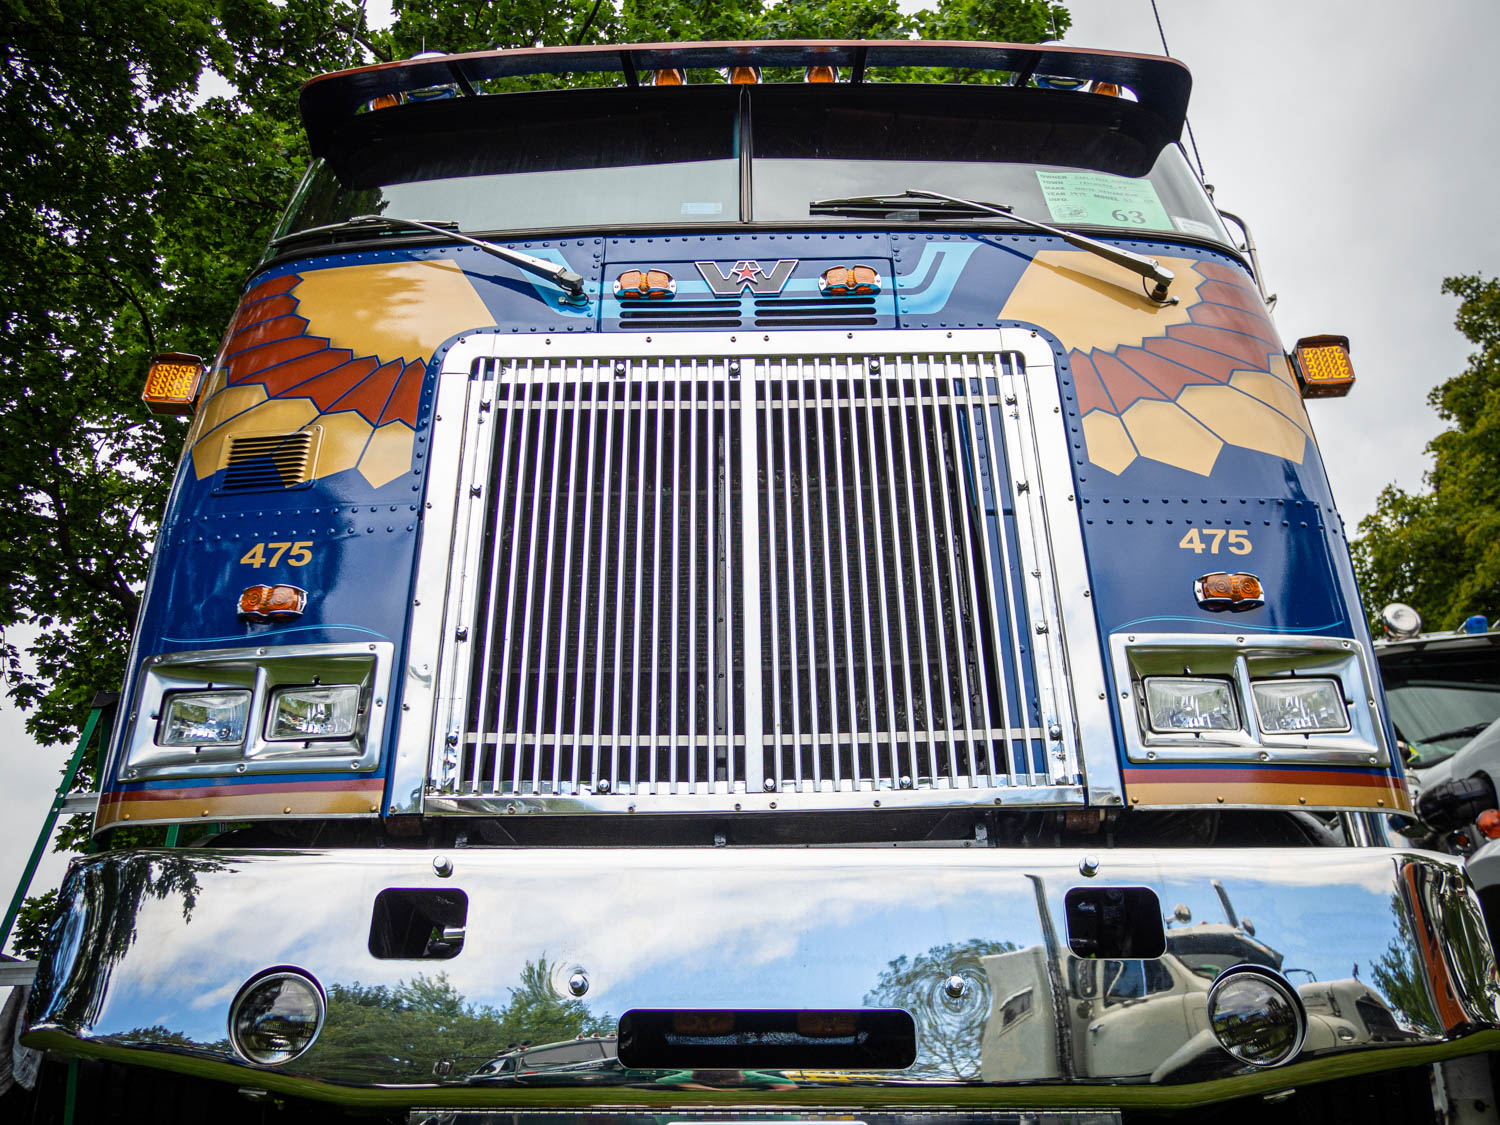 The wonderful paint job suited this 1979 White Western Star DS cabover perfectly.